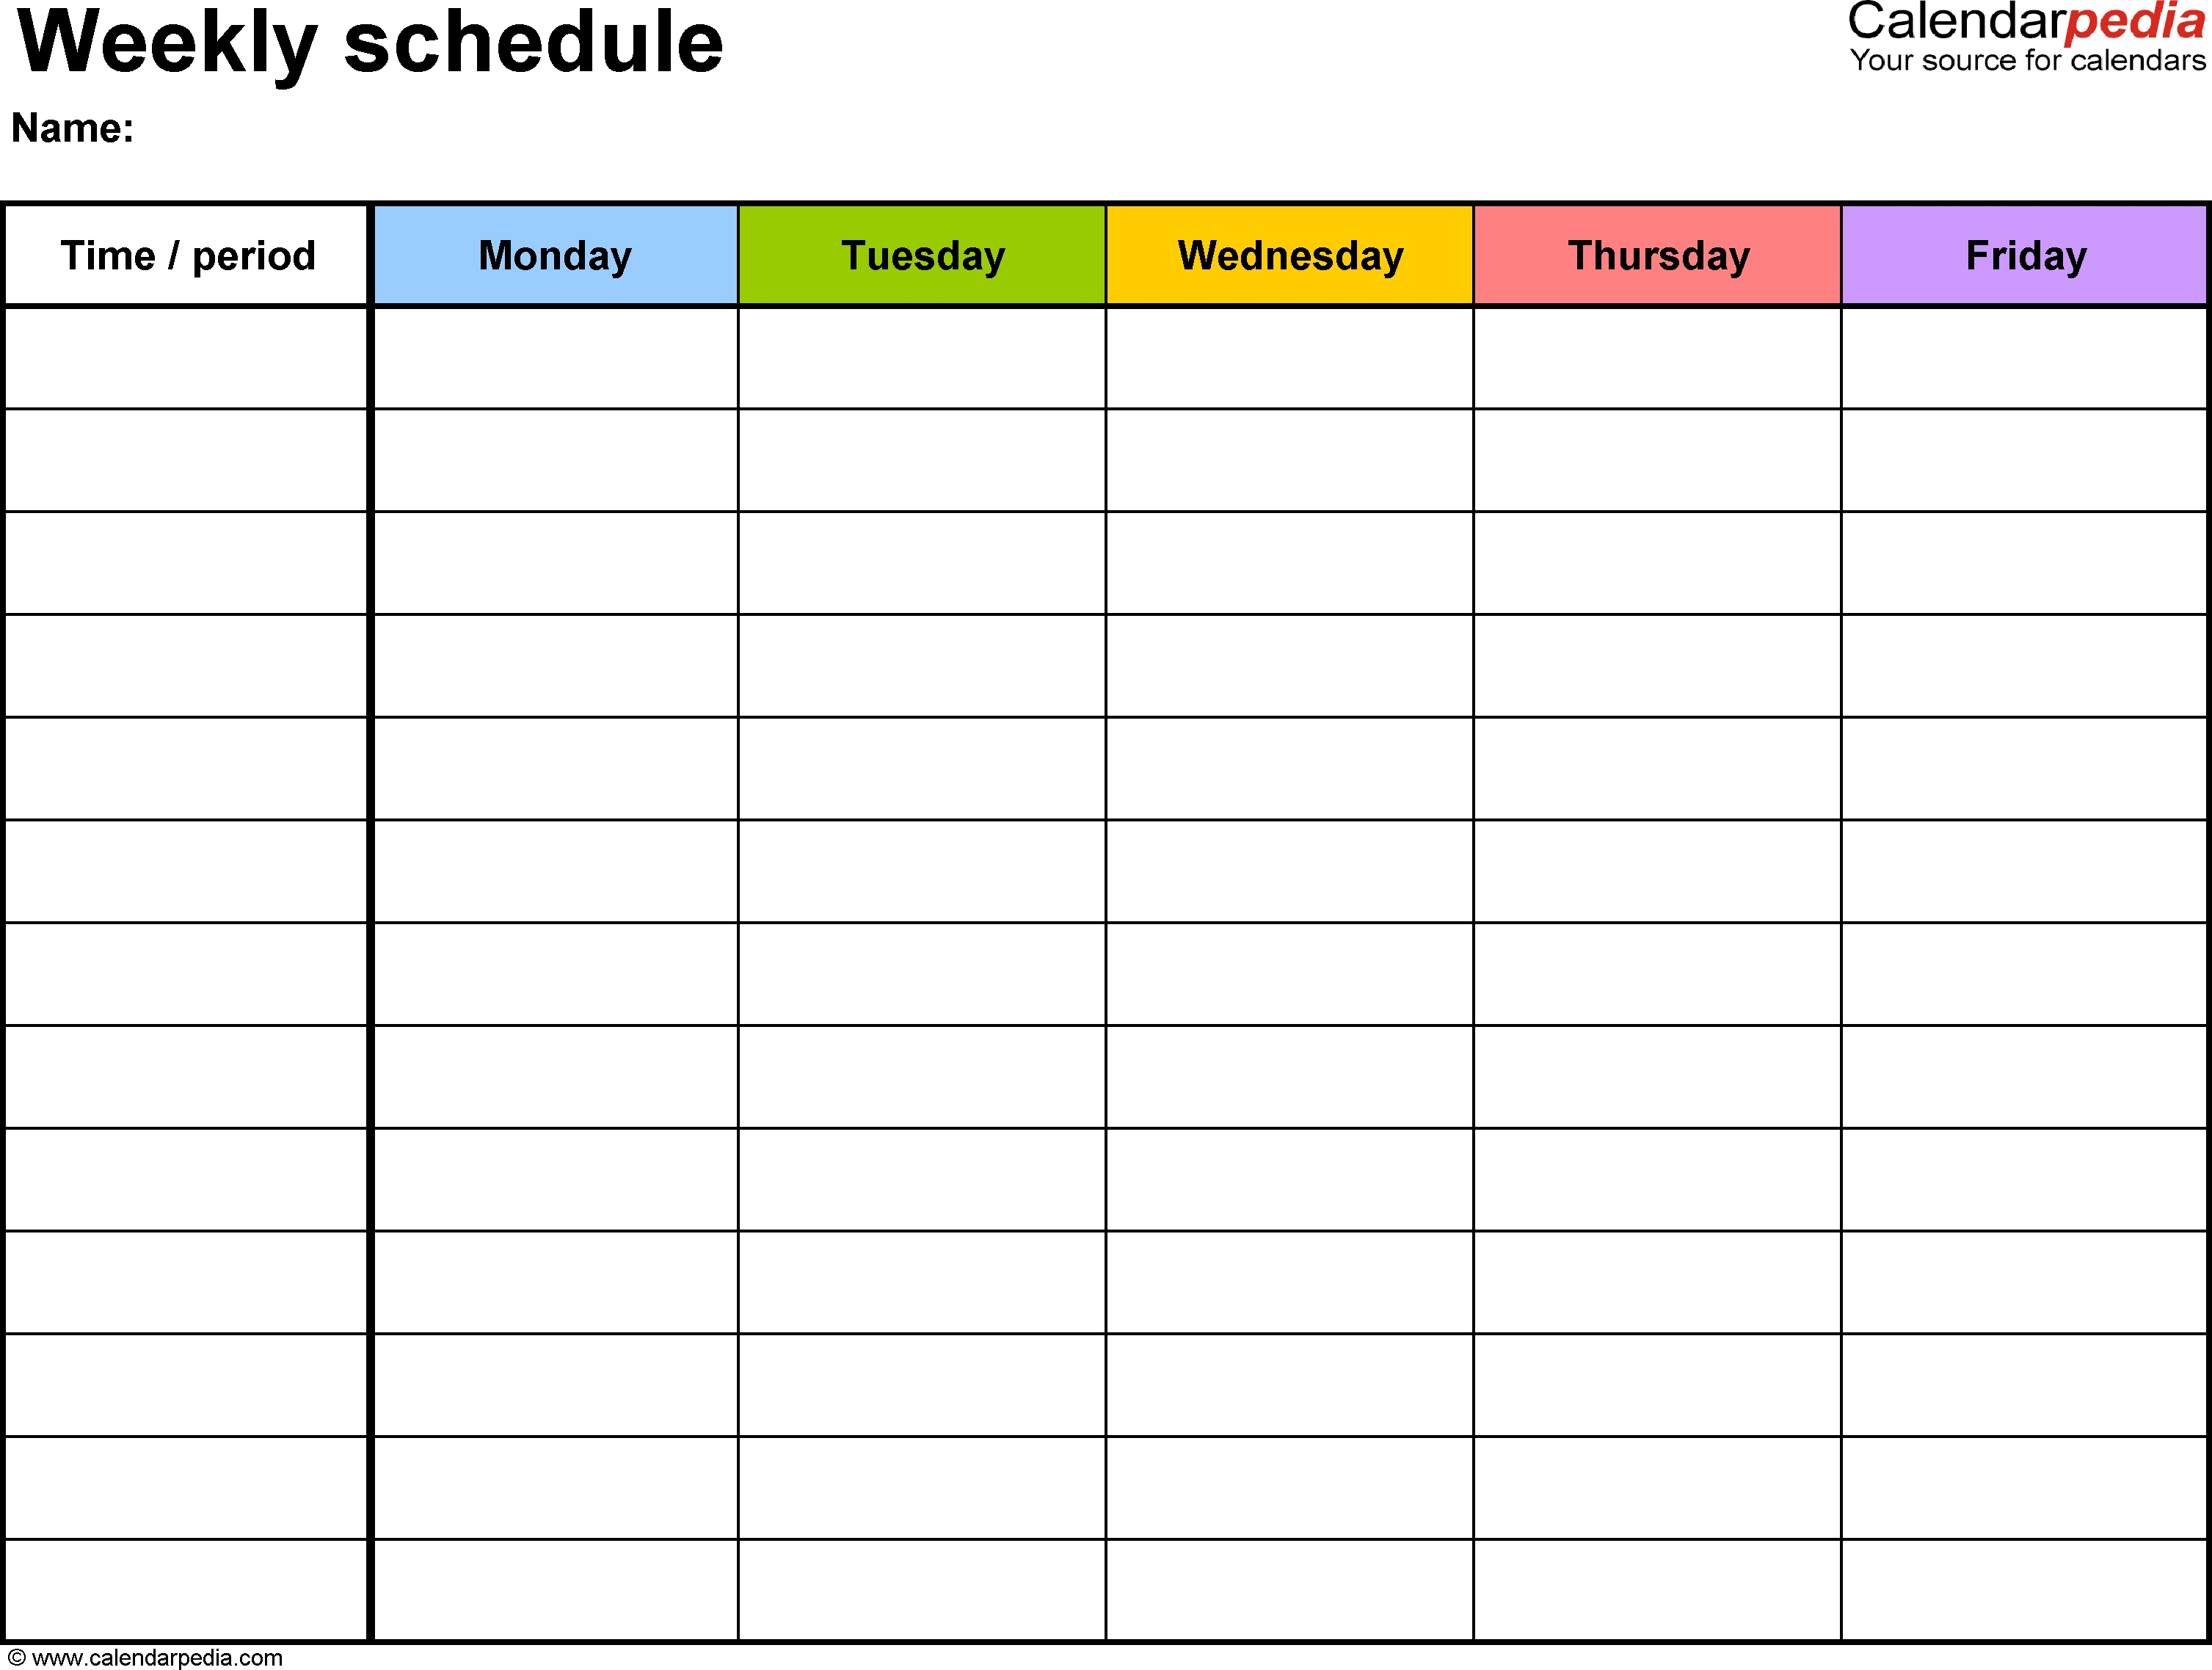 Free Weekly Schedule Templates For Word - 18 Templates pertaining to 7 Day Weekly Planner Template Printable